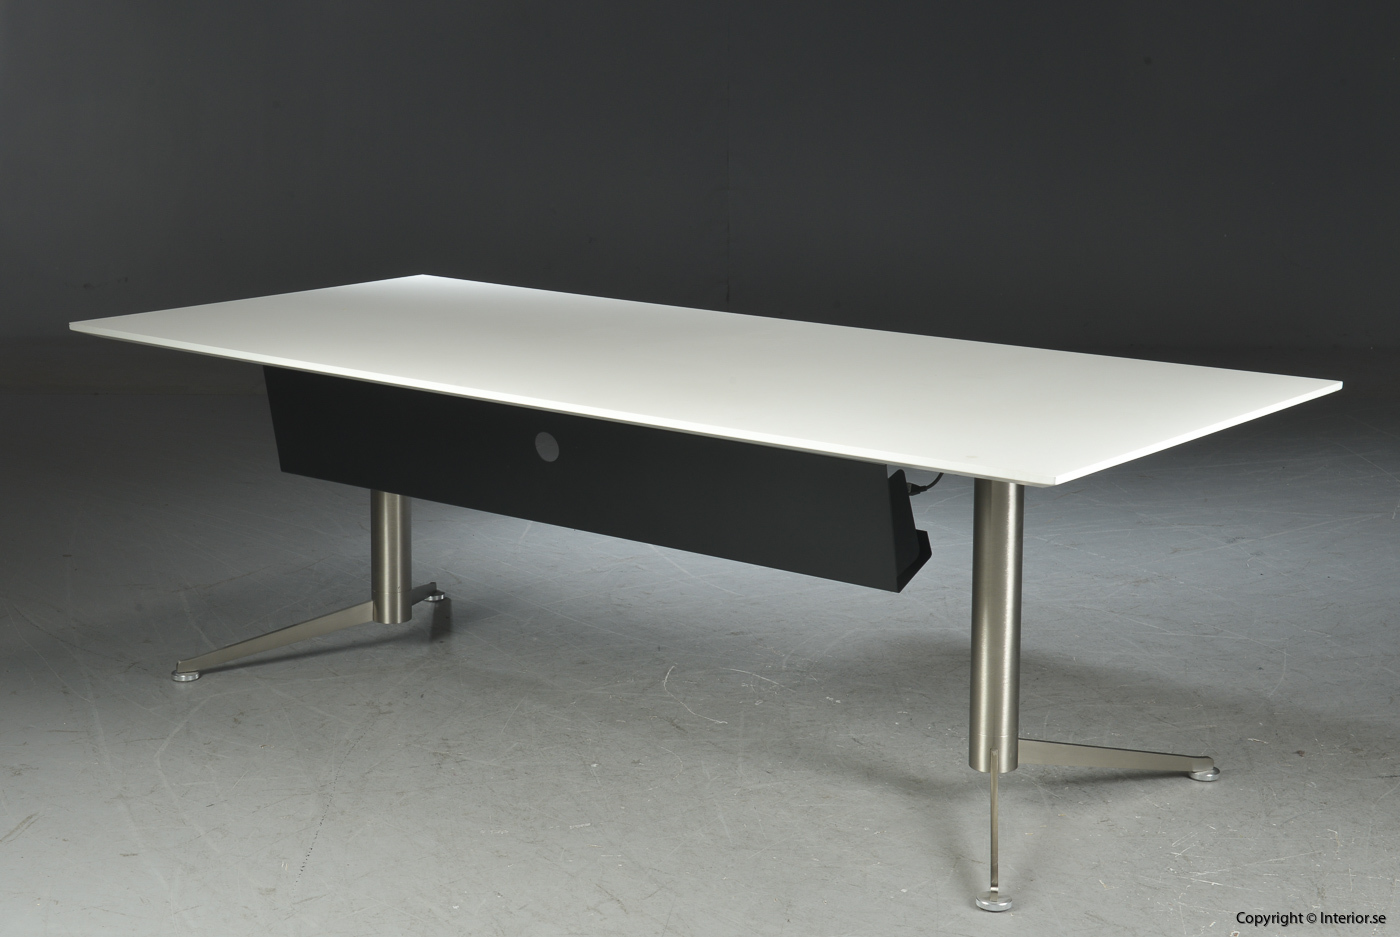 Höj- & sänkbart konferensbord, Paustian Spinal Table SP37 - Paul Leroy 3